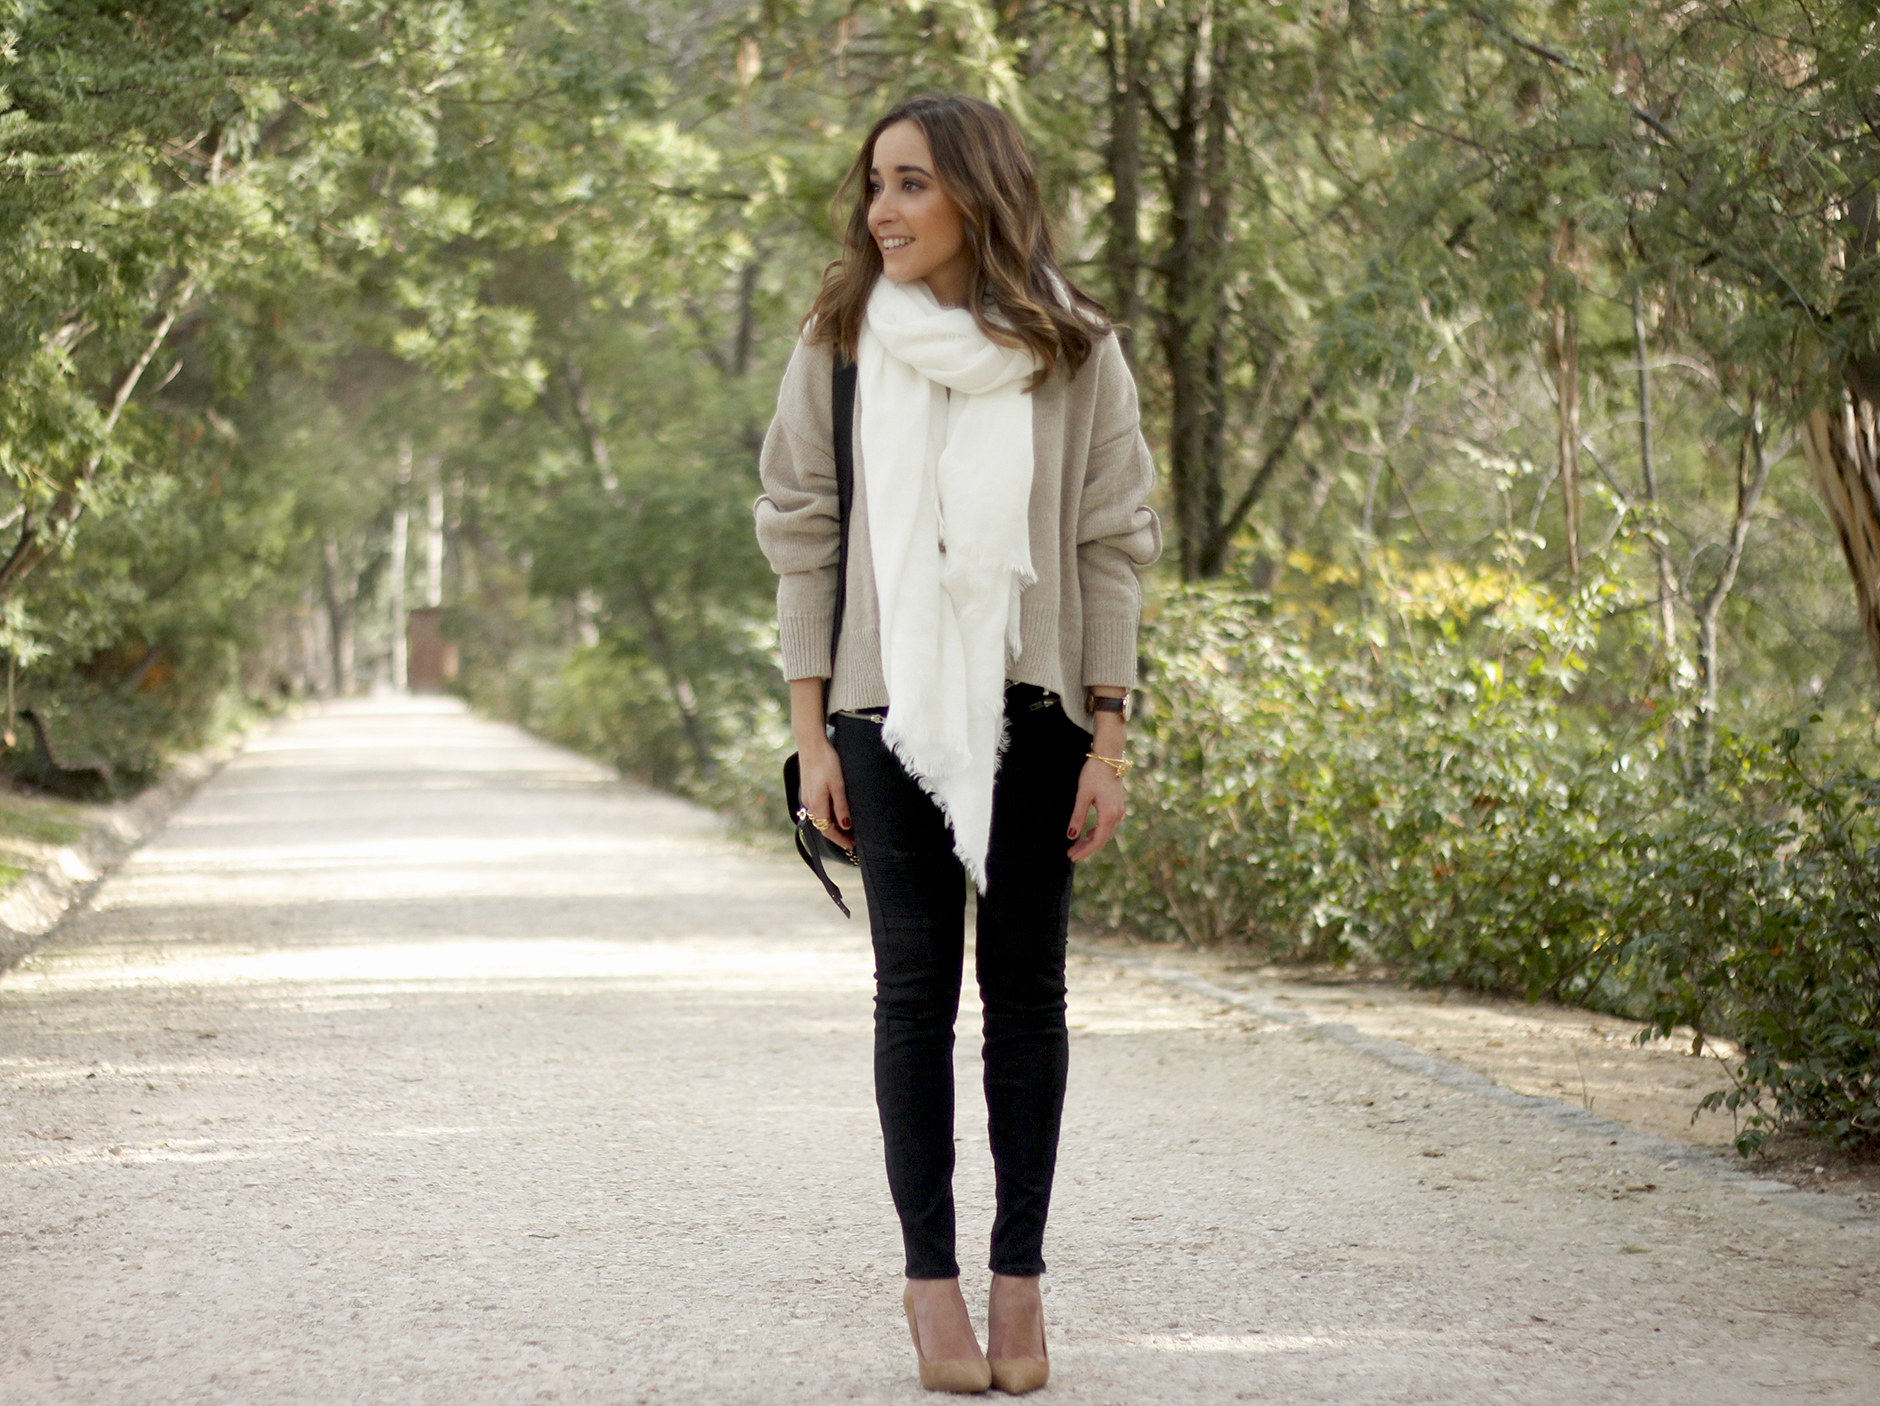 Beige Sweater Black Jeans Nude Heels White Scarf Coach Bag Outfit Style01